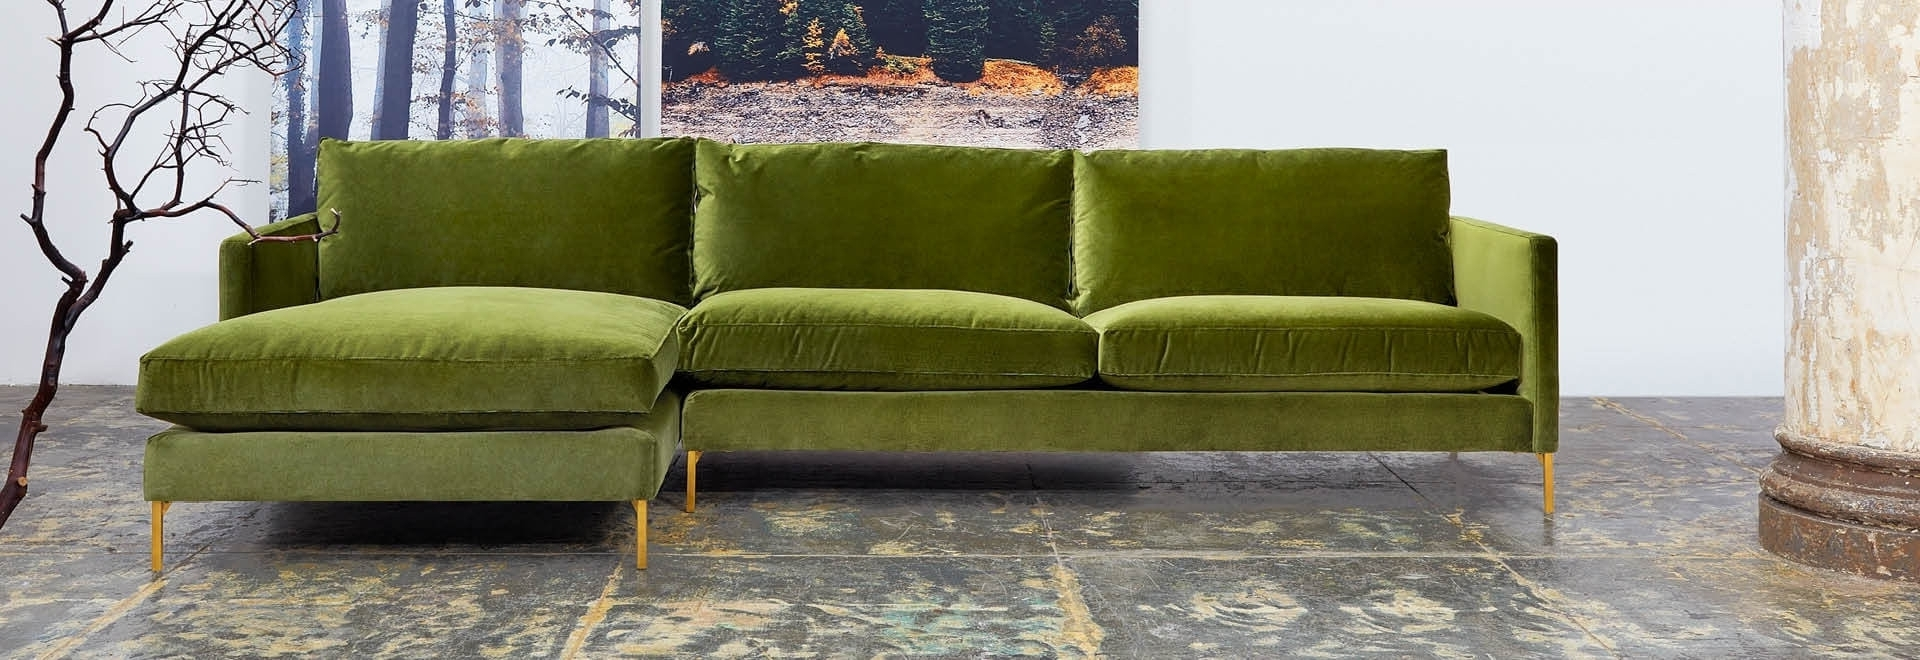 Modern Sectional Sofas For Nyc Apartments At Abc Home With Regard To Well Liked Sectional Sofas In Stock (View 9 of 20)